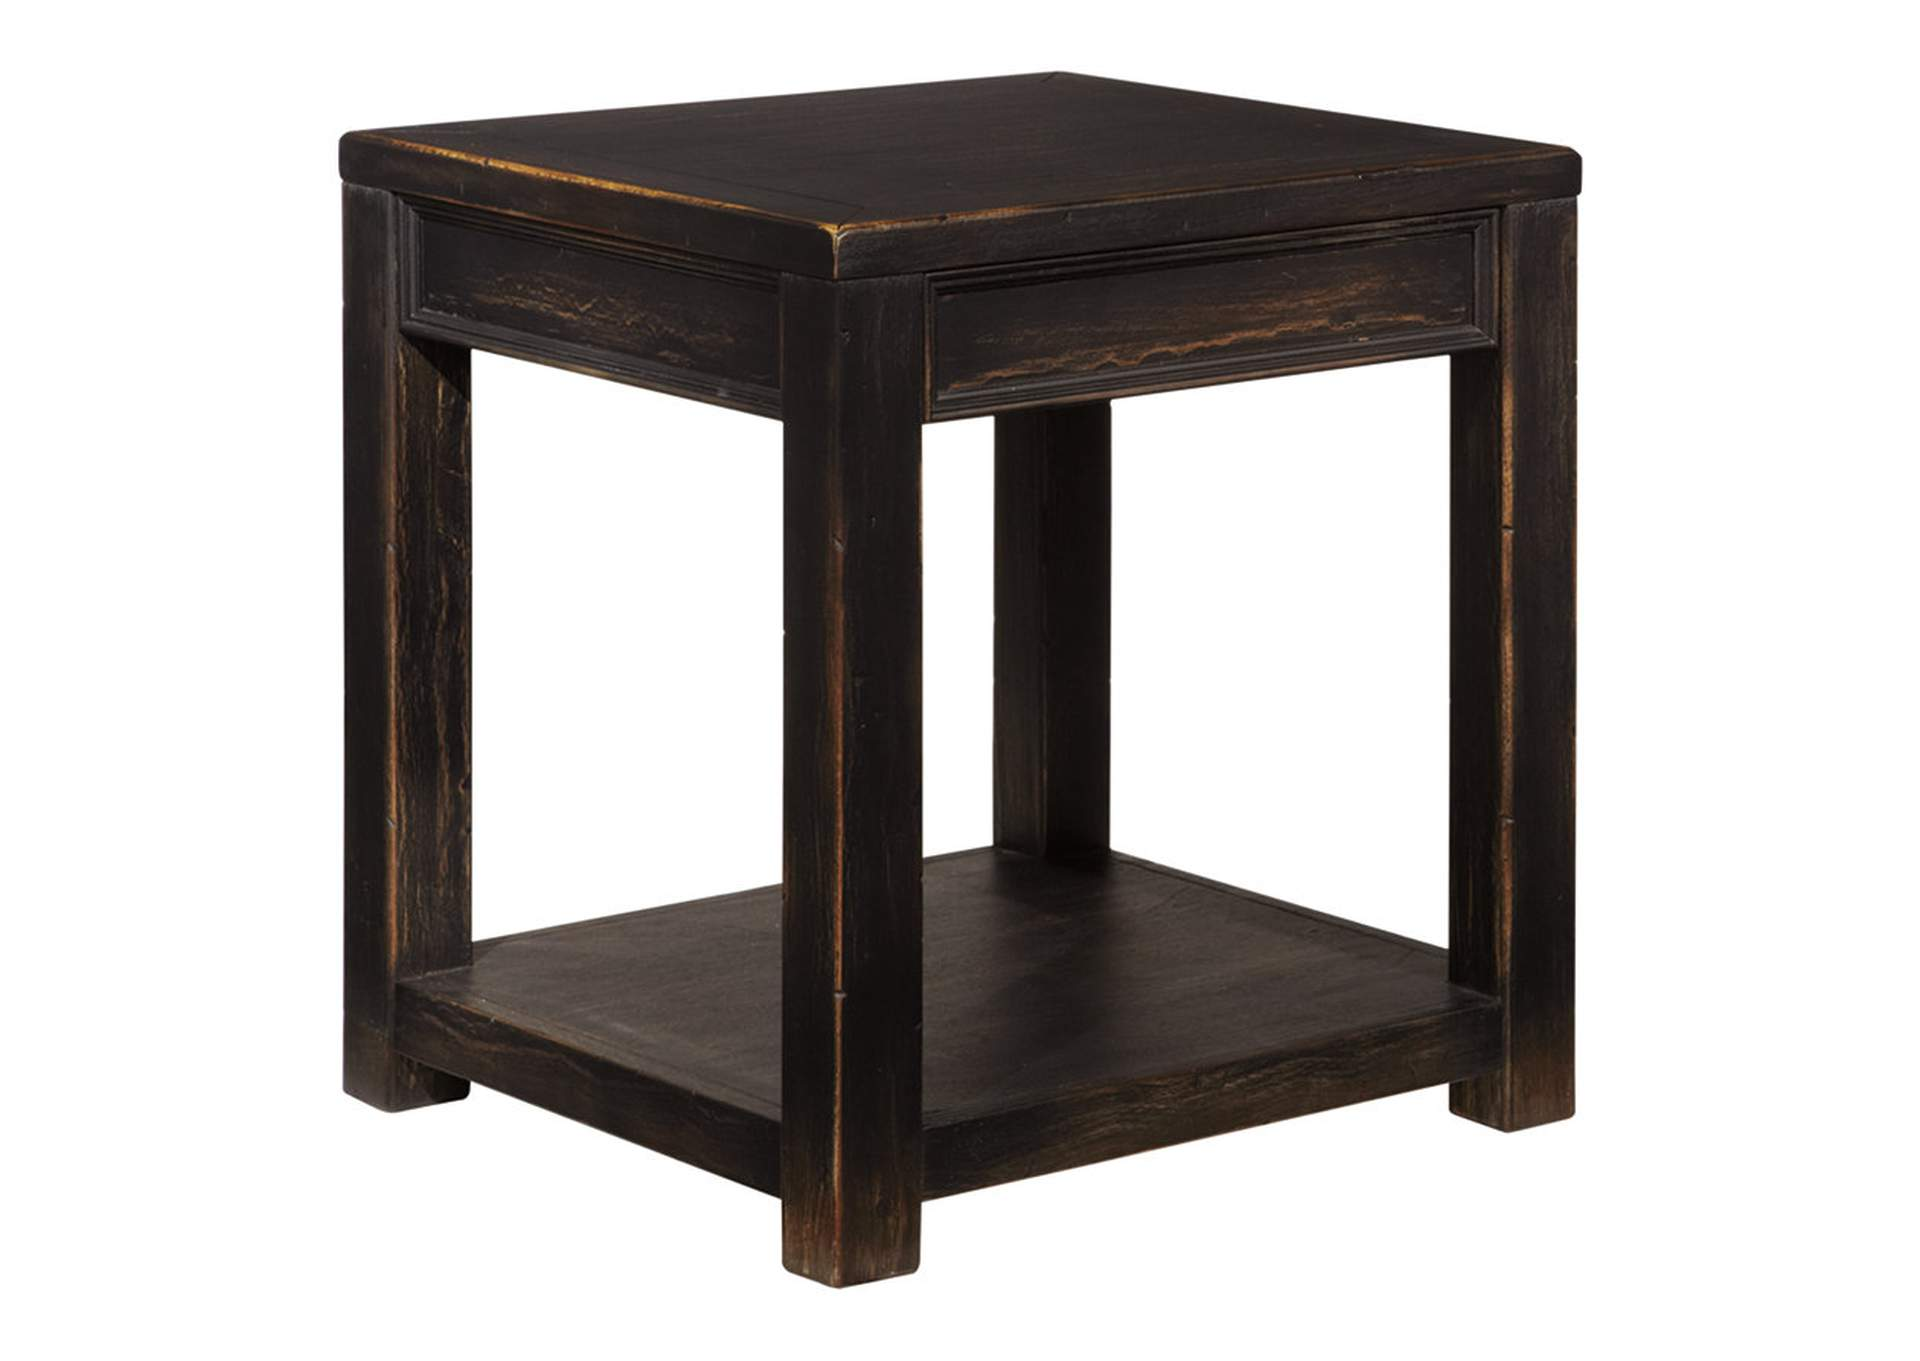 Gavelston Square End Table,Signature Design By Ashley